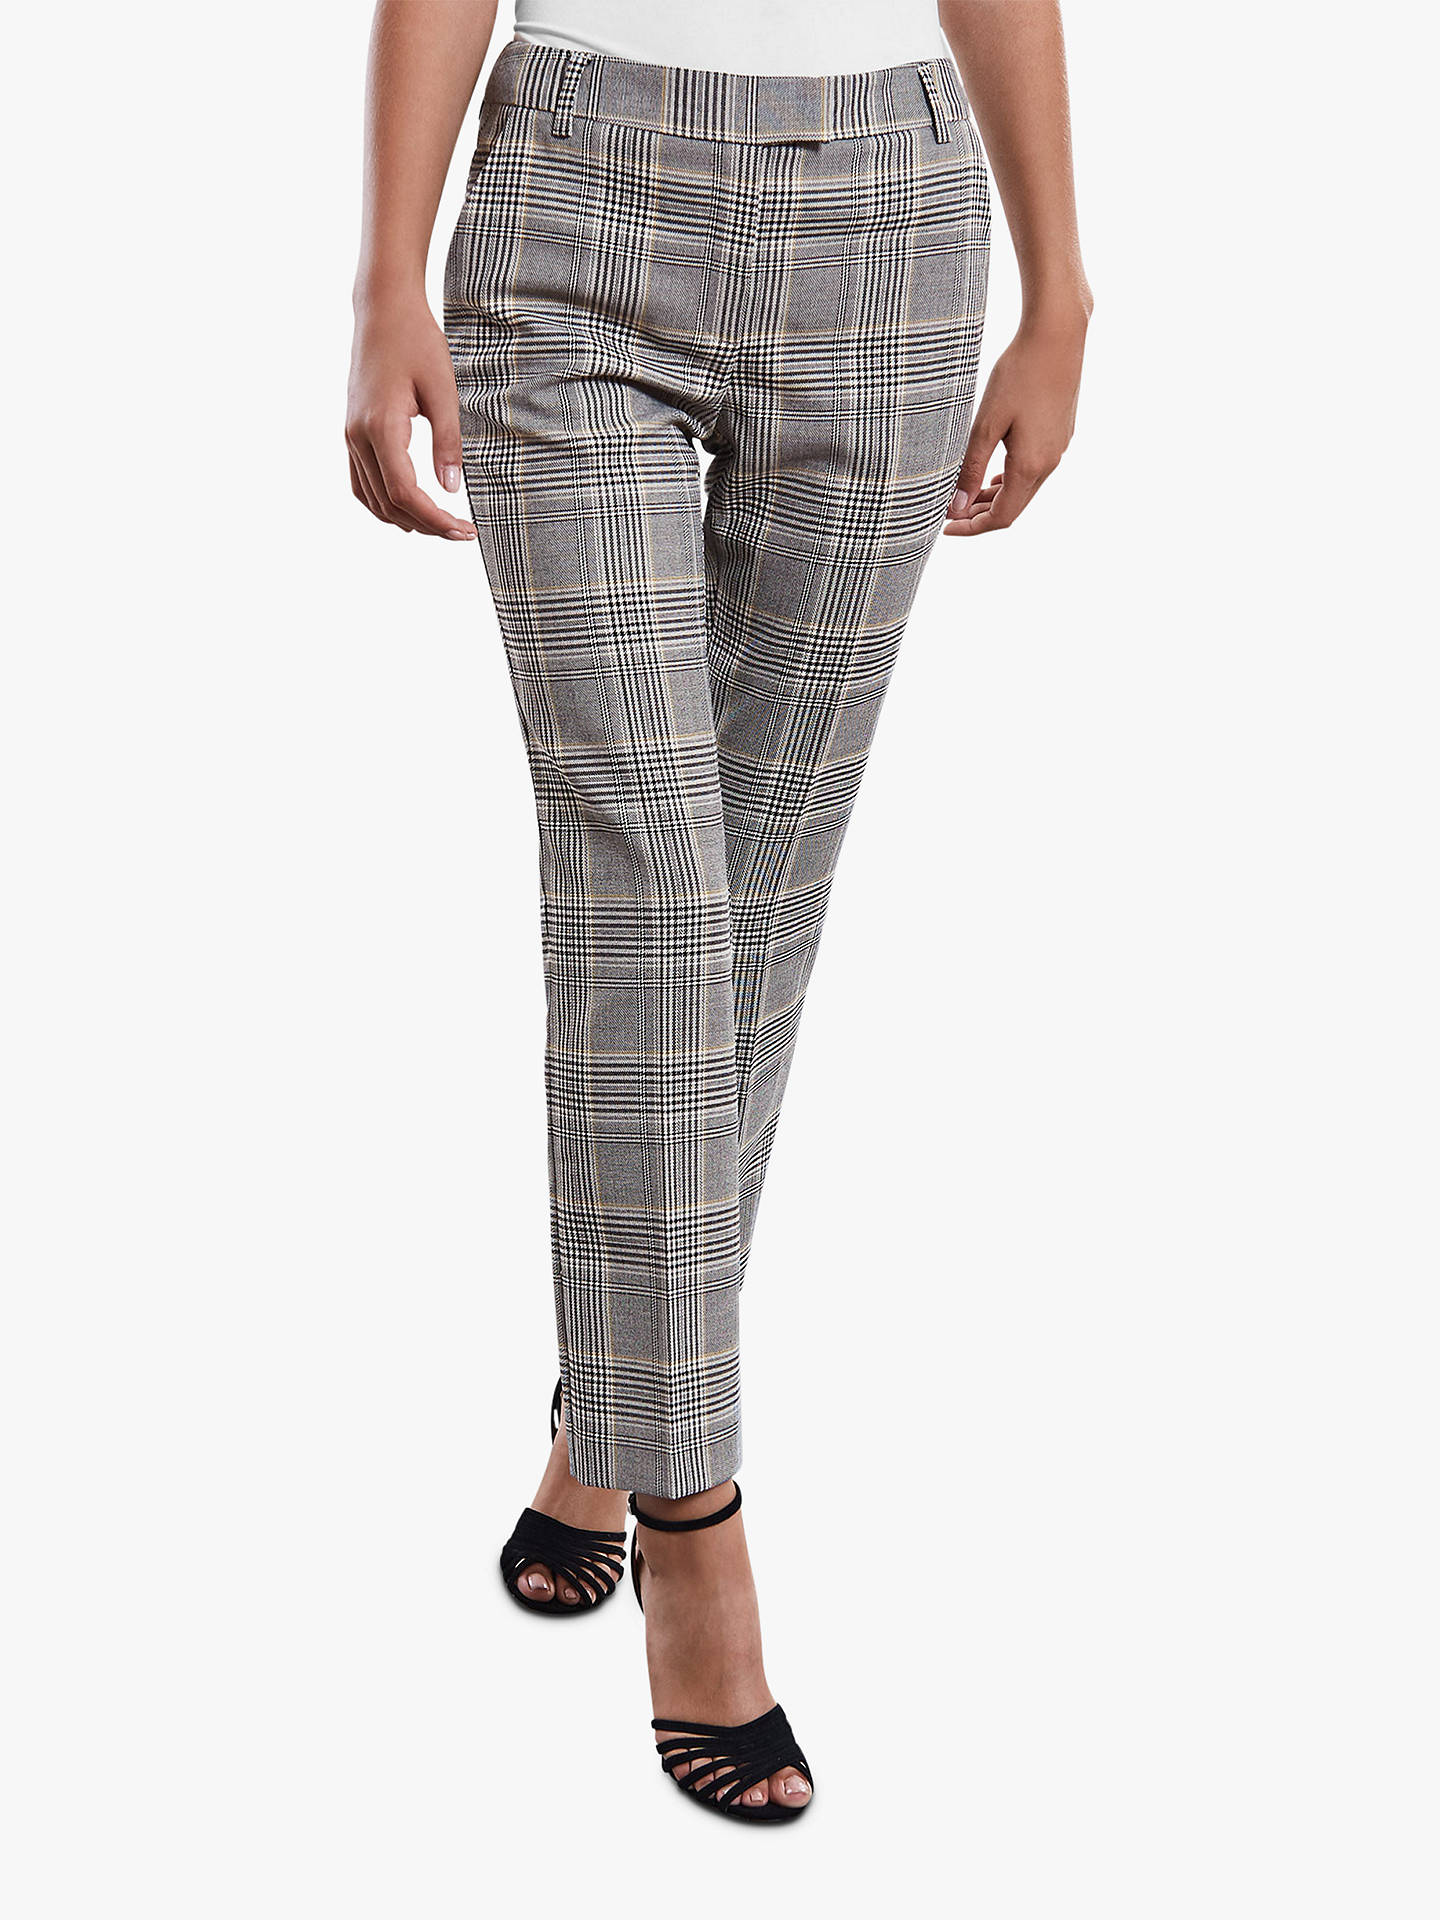 BuyReiss Milan Check Skinny Trousers, Black/White, 8 Online at johnlewis.com